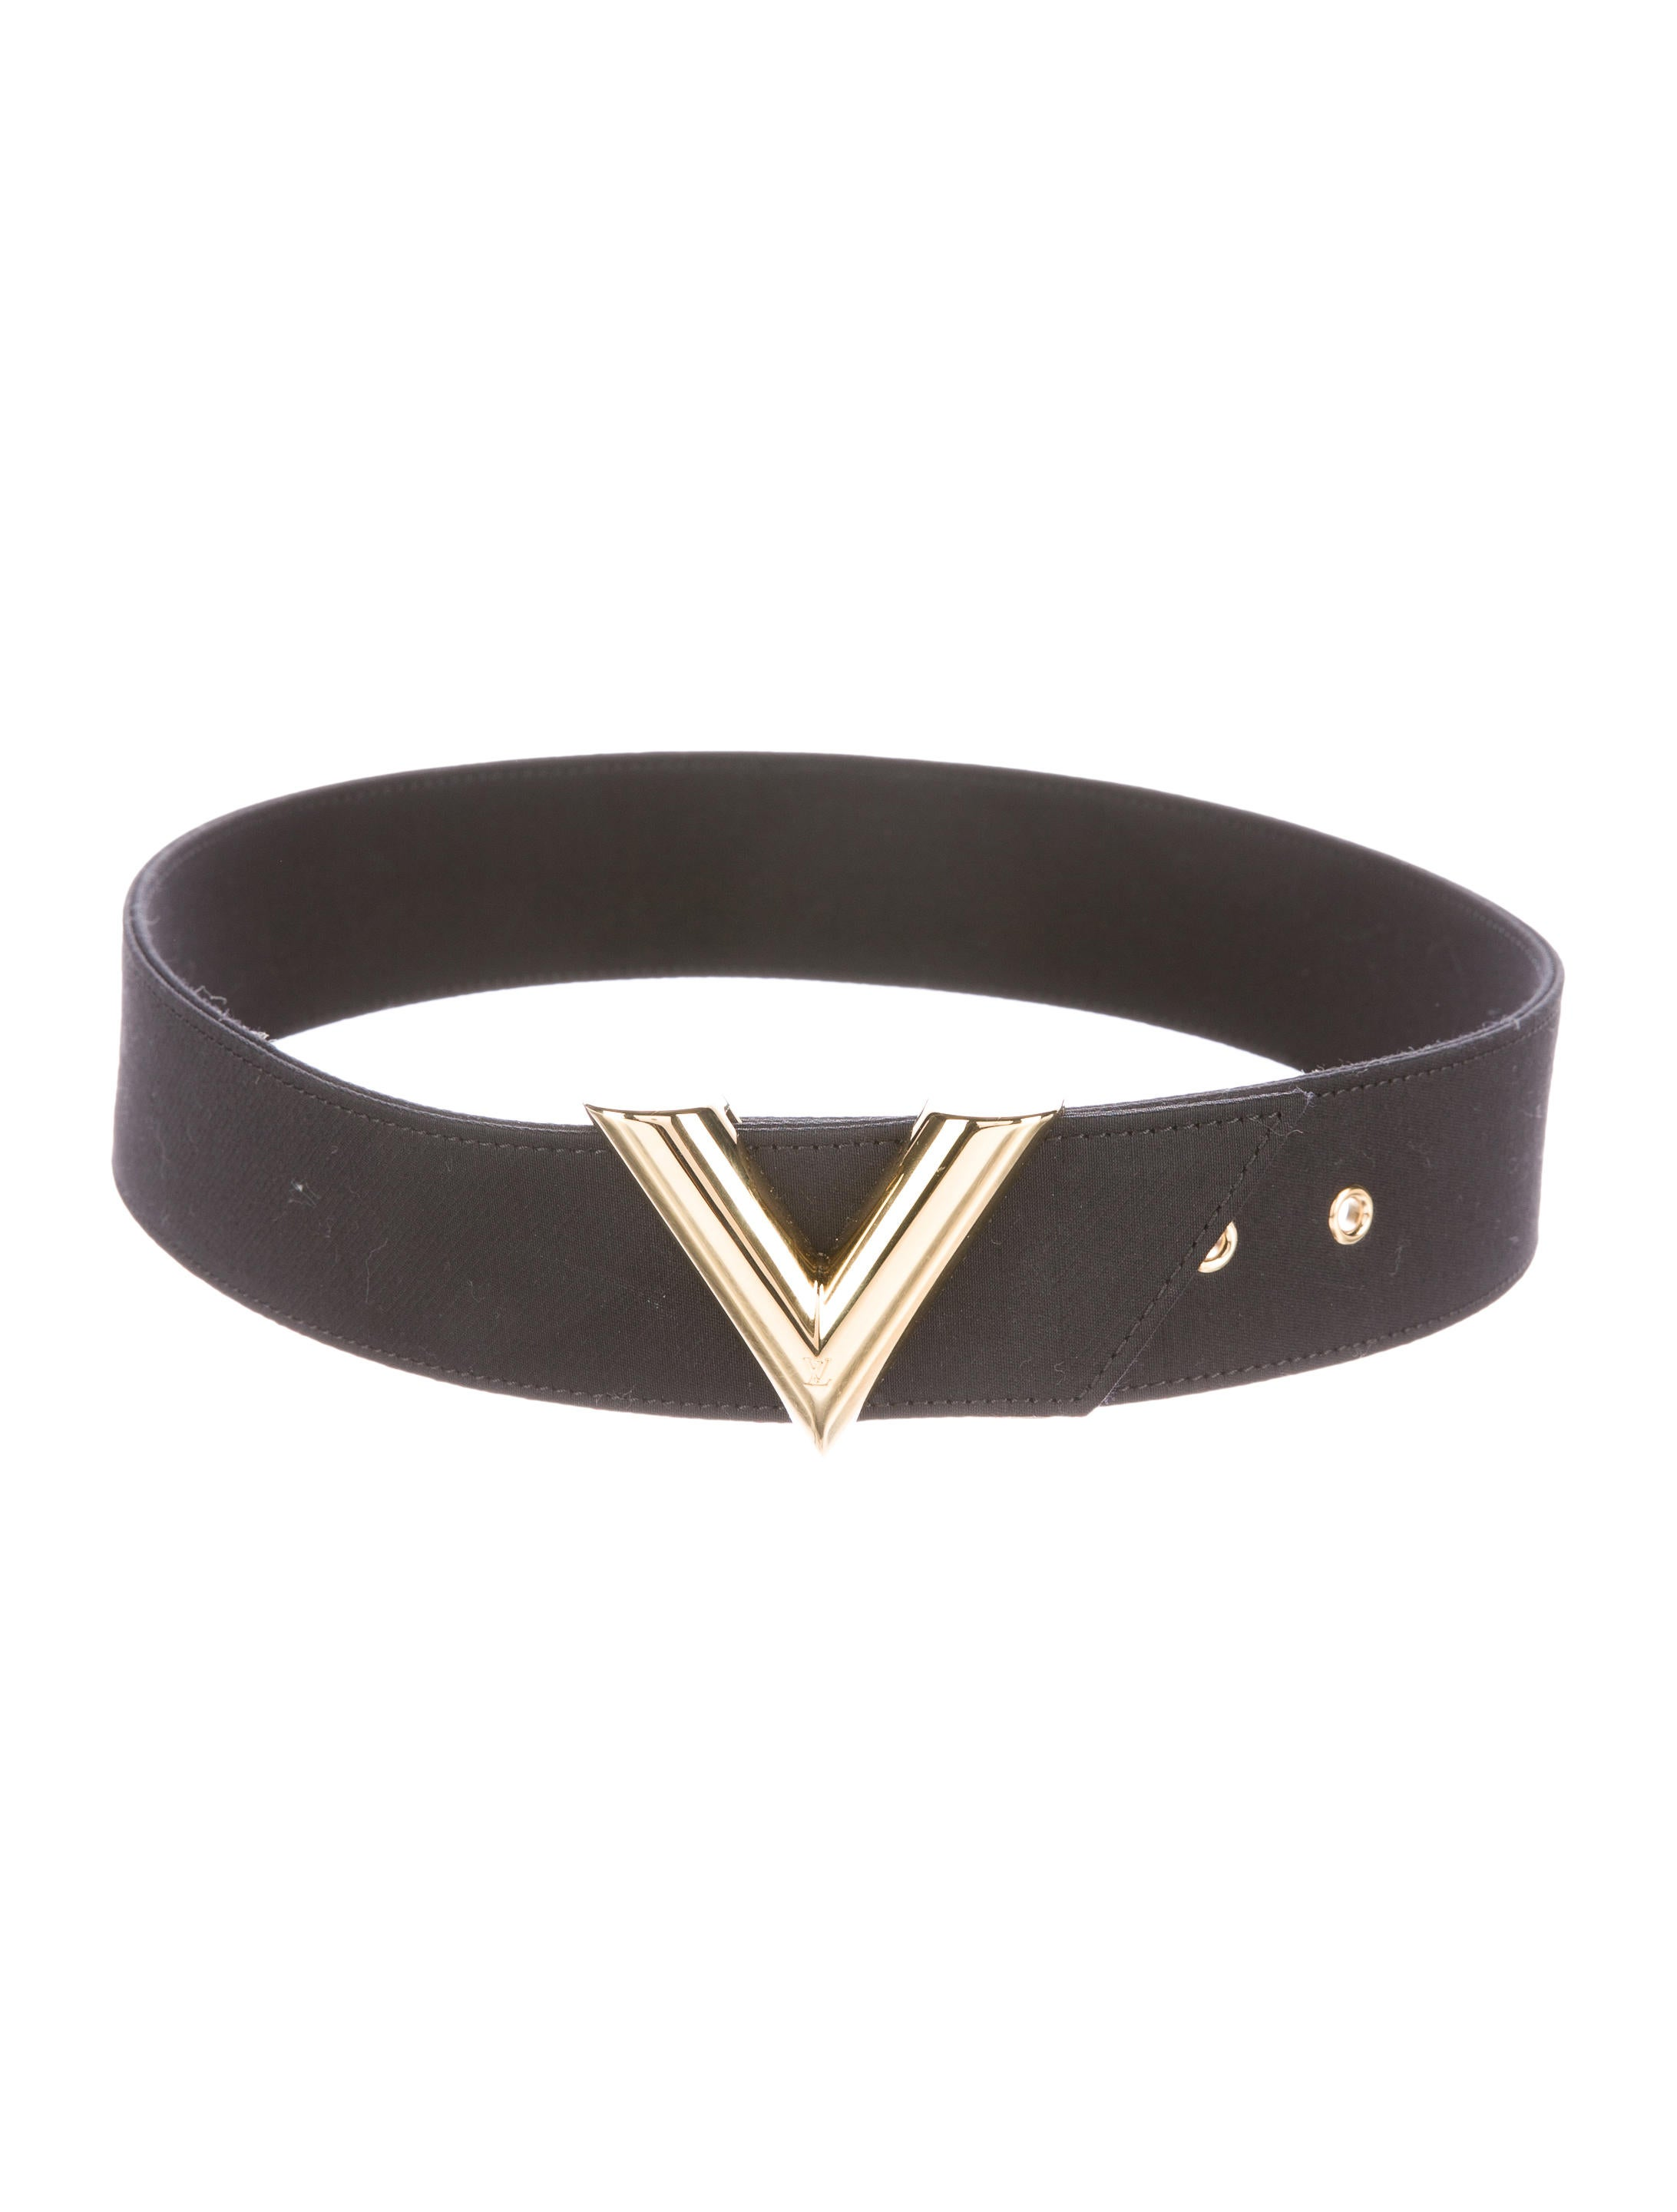 Louis Vuitton Essential V Belt - Accessories